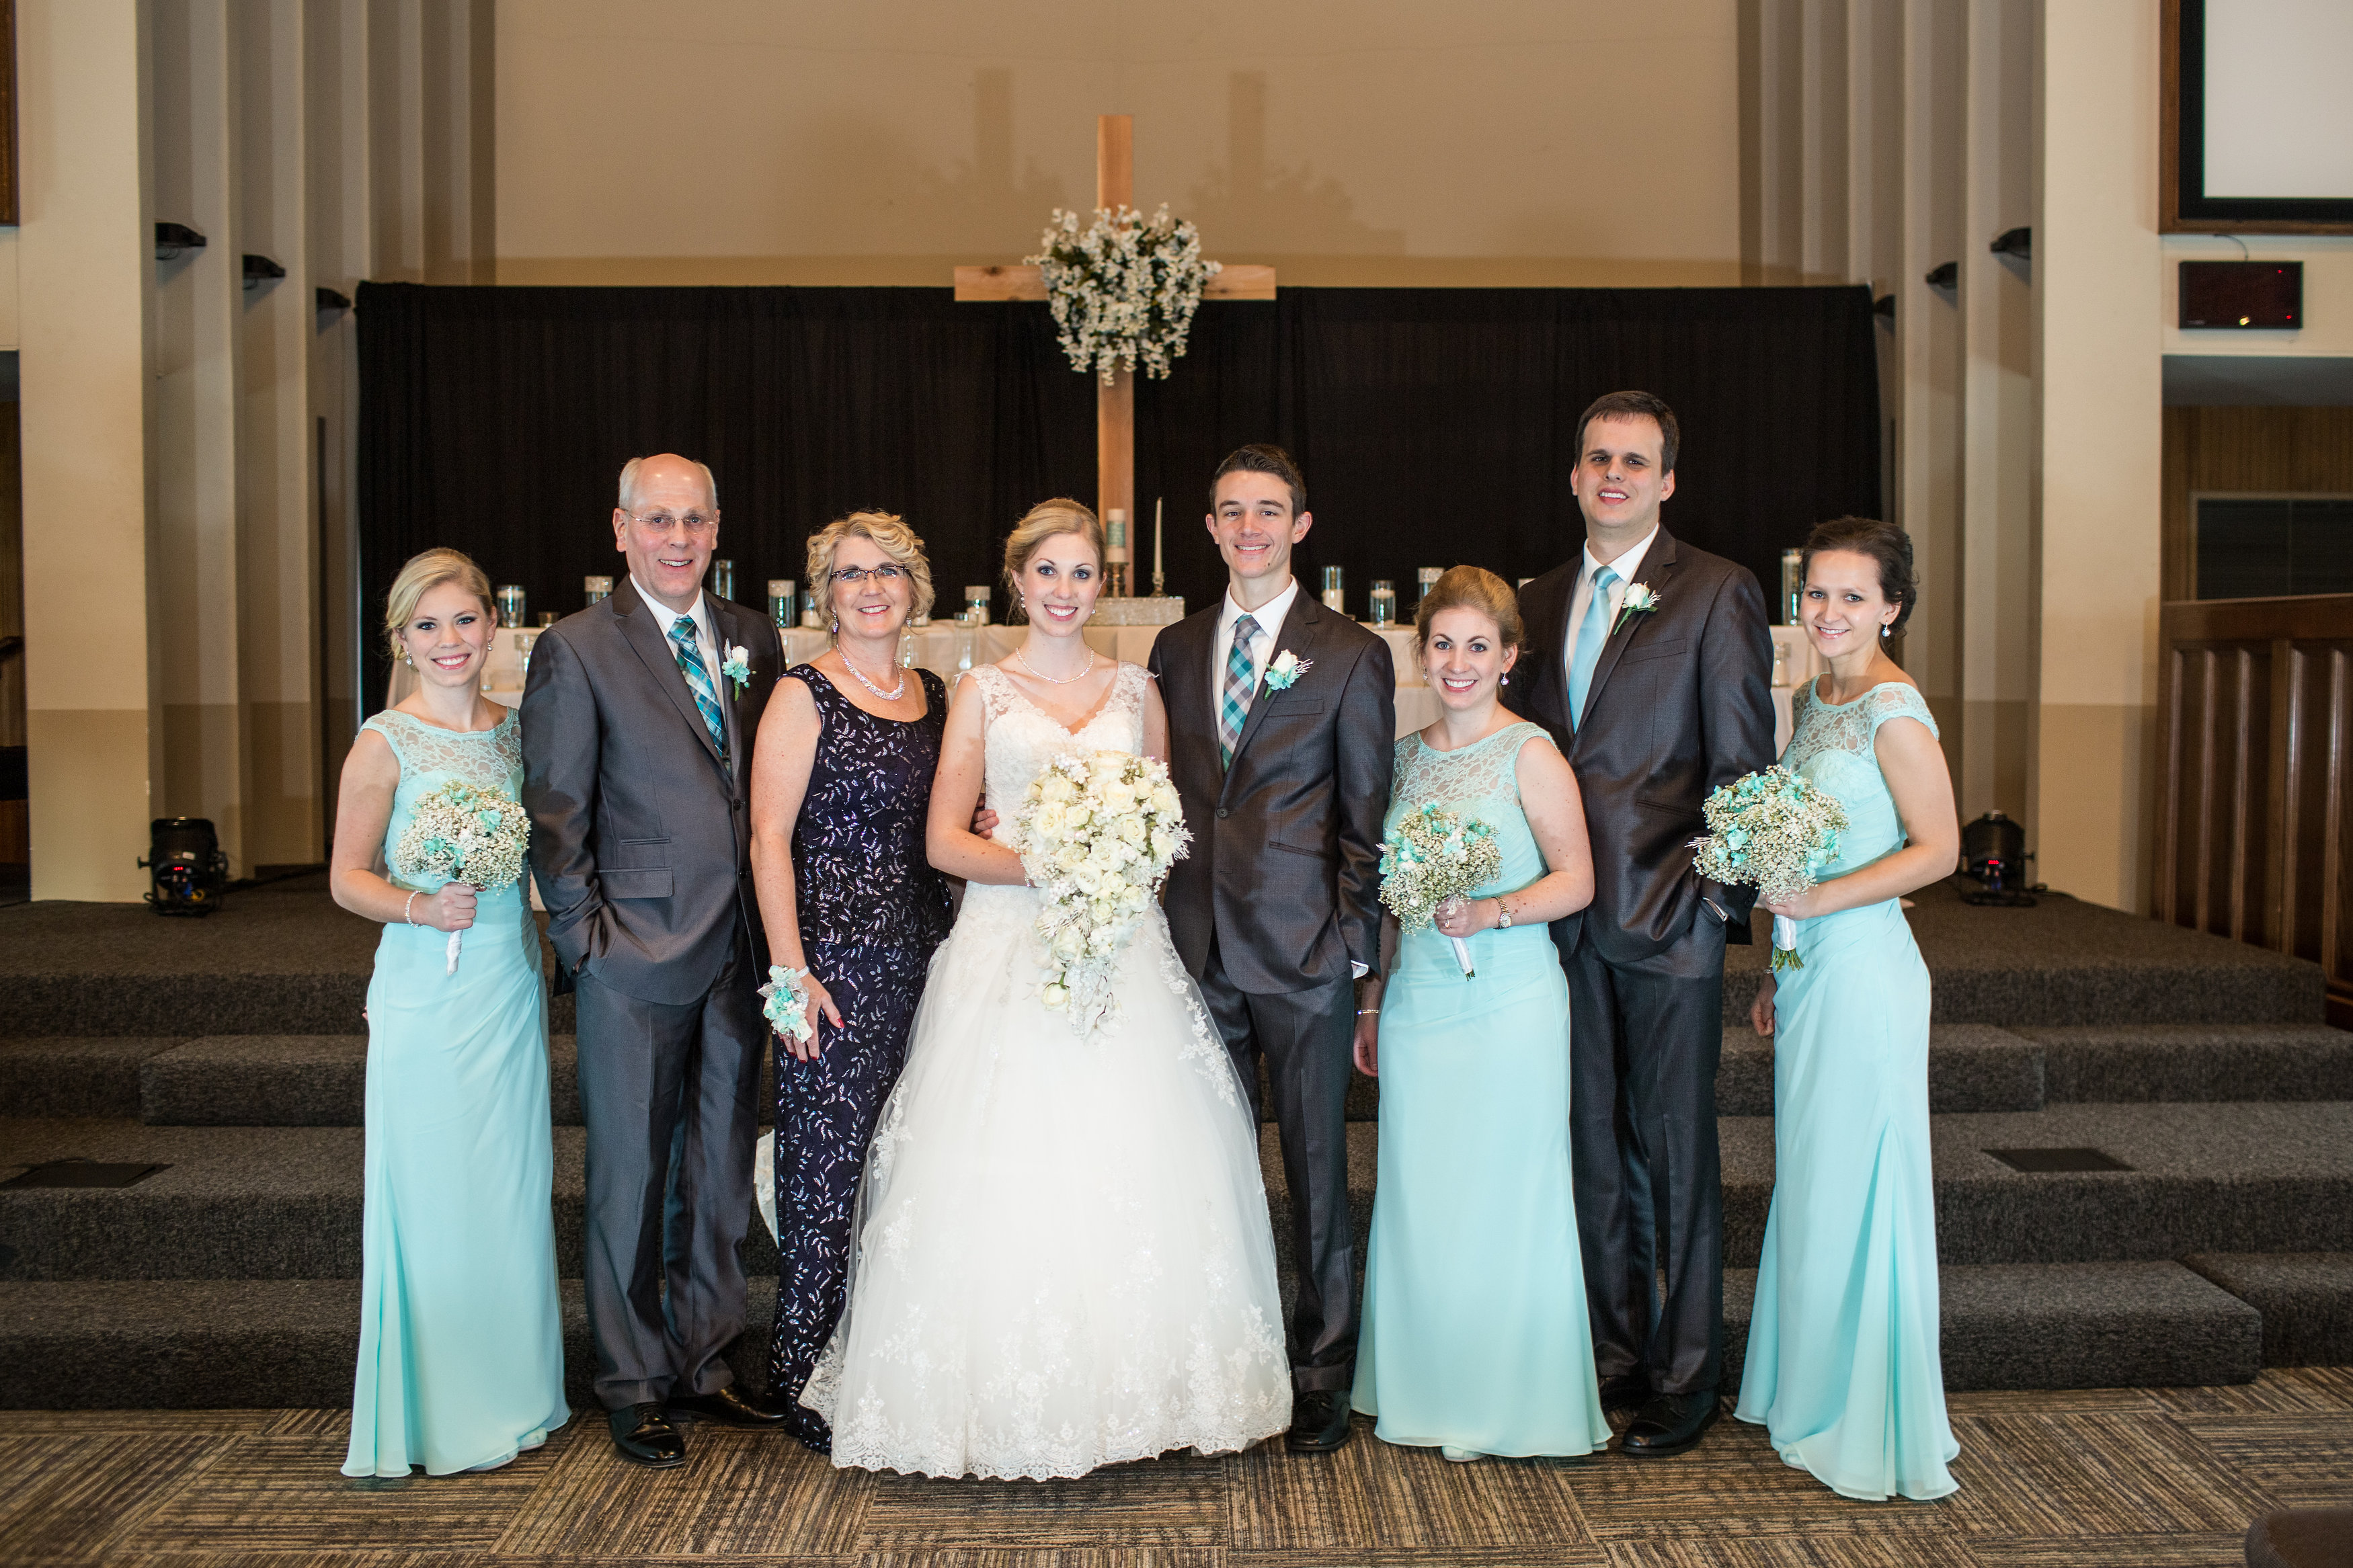 Antonia- shown on the far right (EF Class of '08-09) joins the Schutte - Vanderzee wedding (Photo courtesy of EF High School Exchange Year)